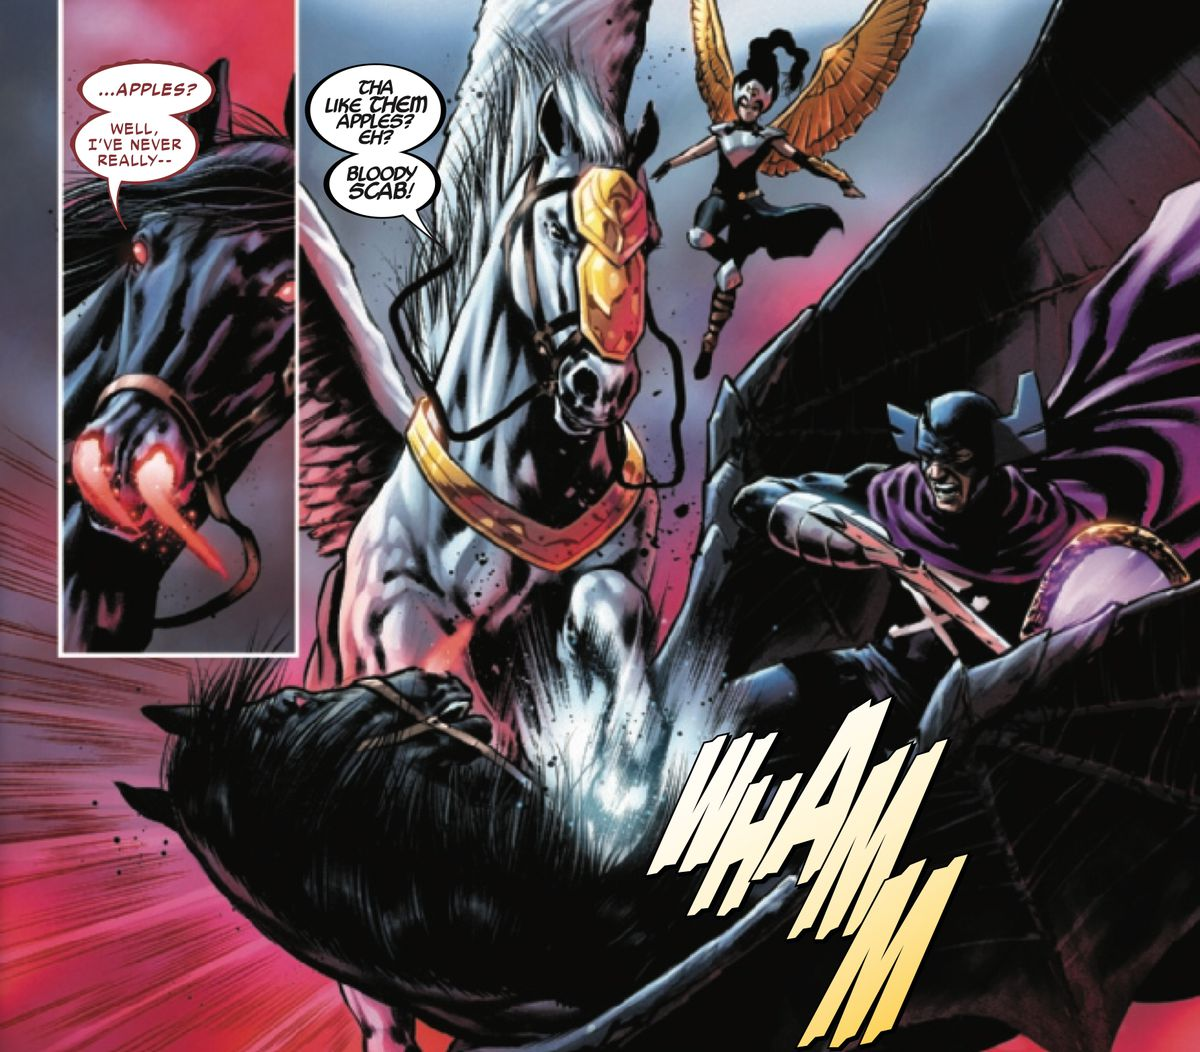 """Valkyrie's talking winged horse attacks an infernal winged horse, shouting """"Tha like them apples? Eh?"""" and calling it a scab, in Valkyrie #5, Marvel Comics (2019)."""